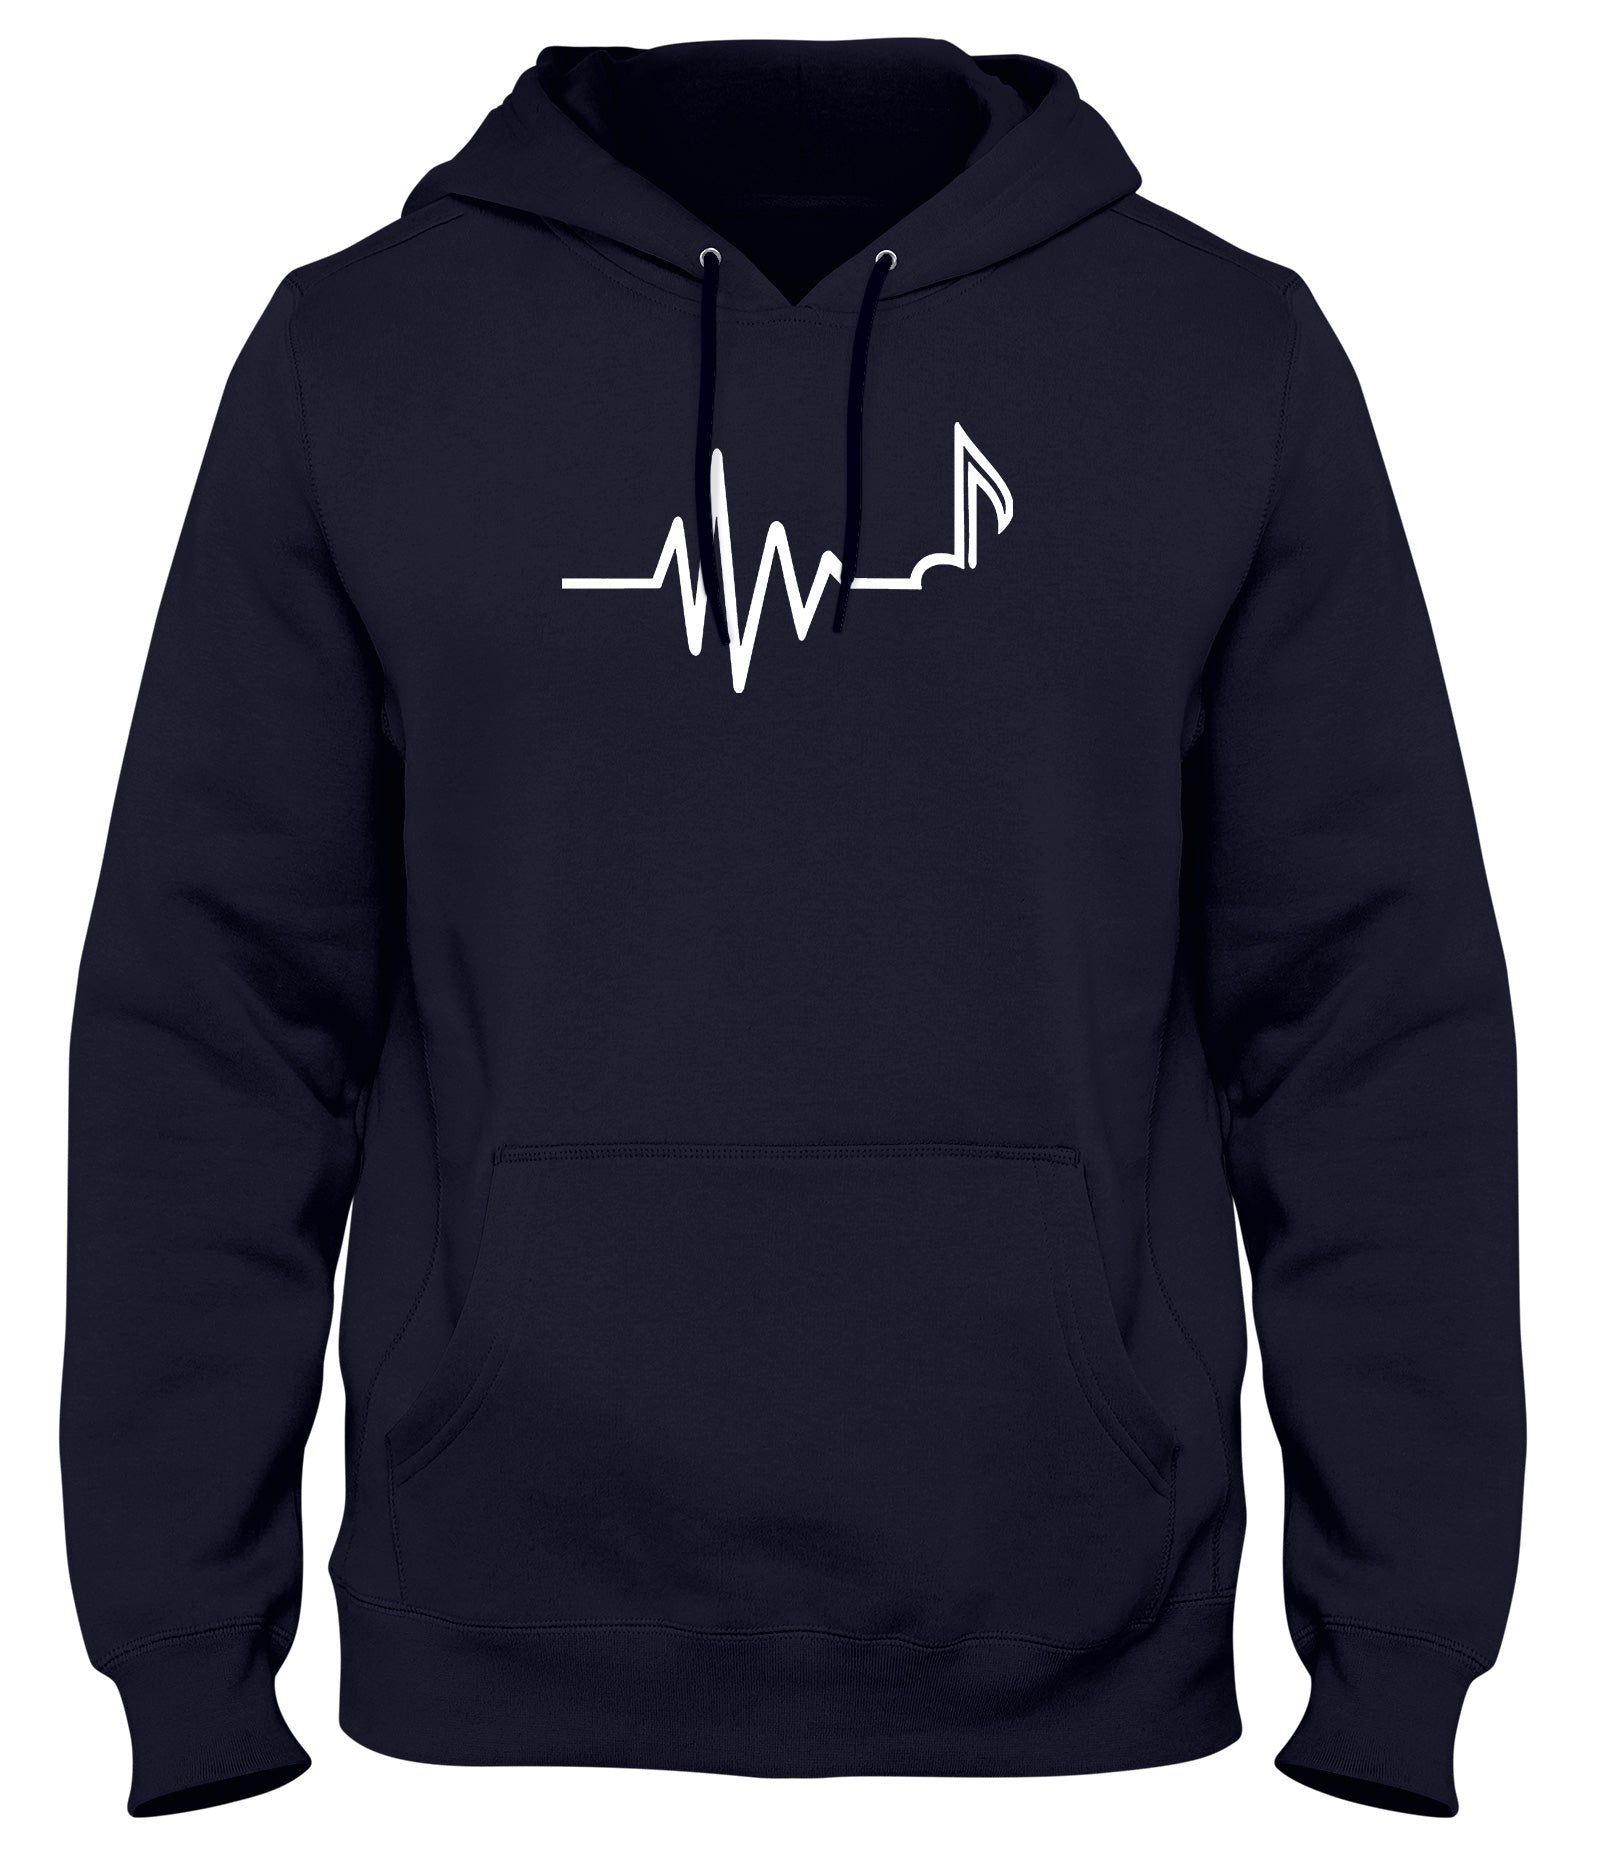 MUSIC HEARTBEAT MENS WOMENS LADIES UNISEX FUNNY SLOGAN HOODIE